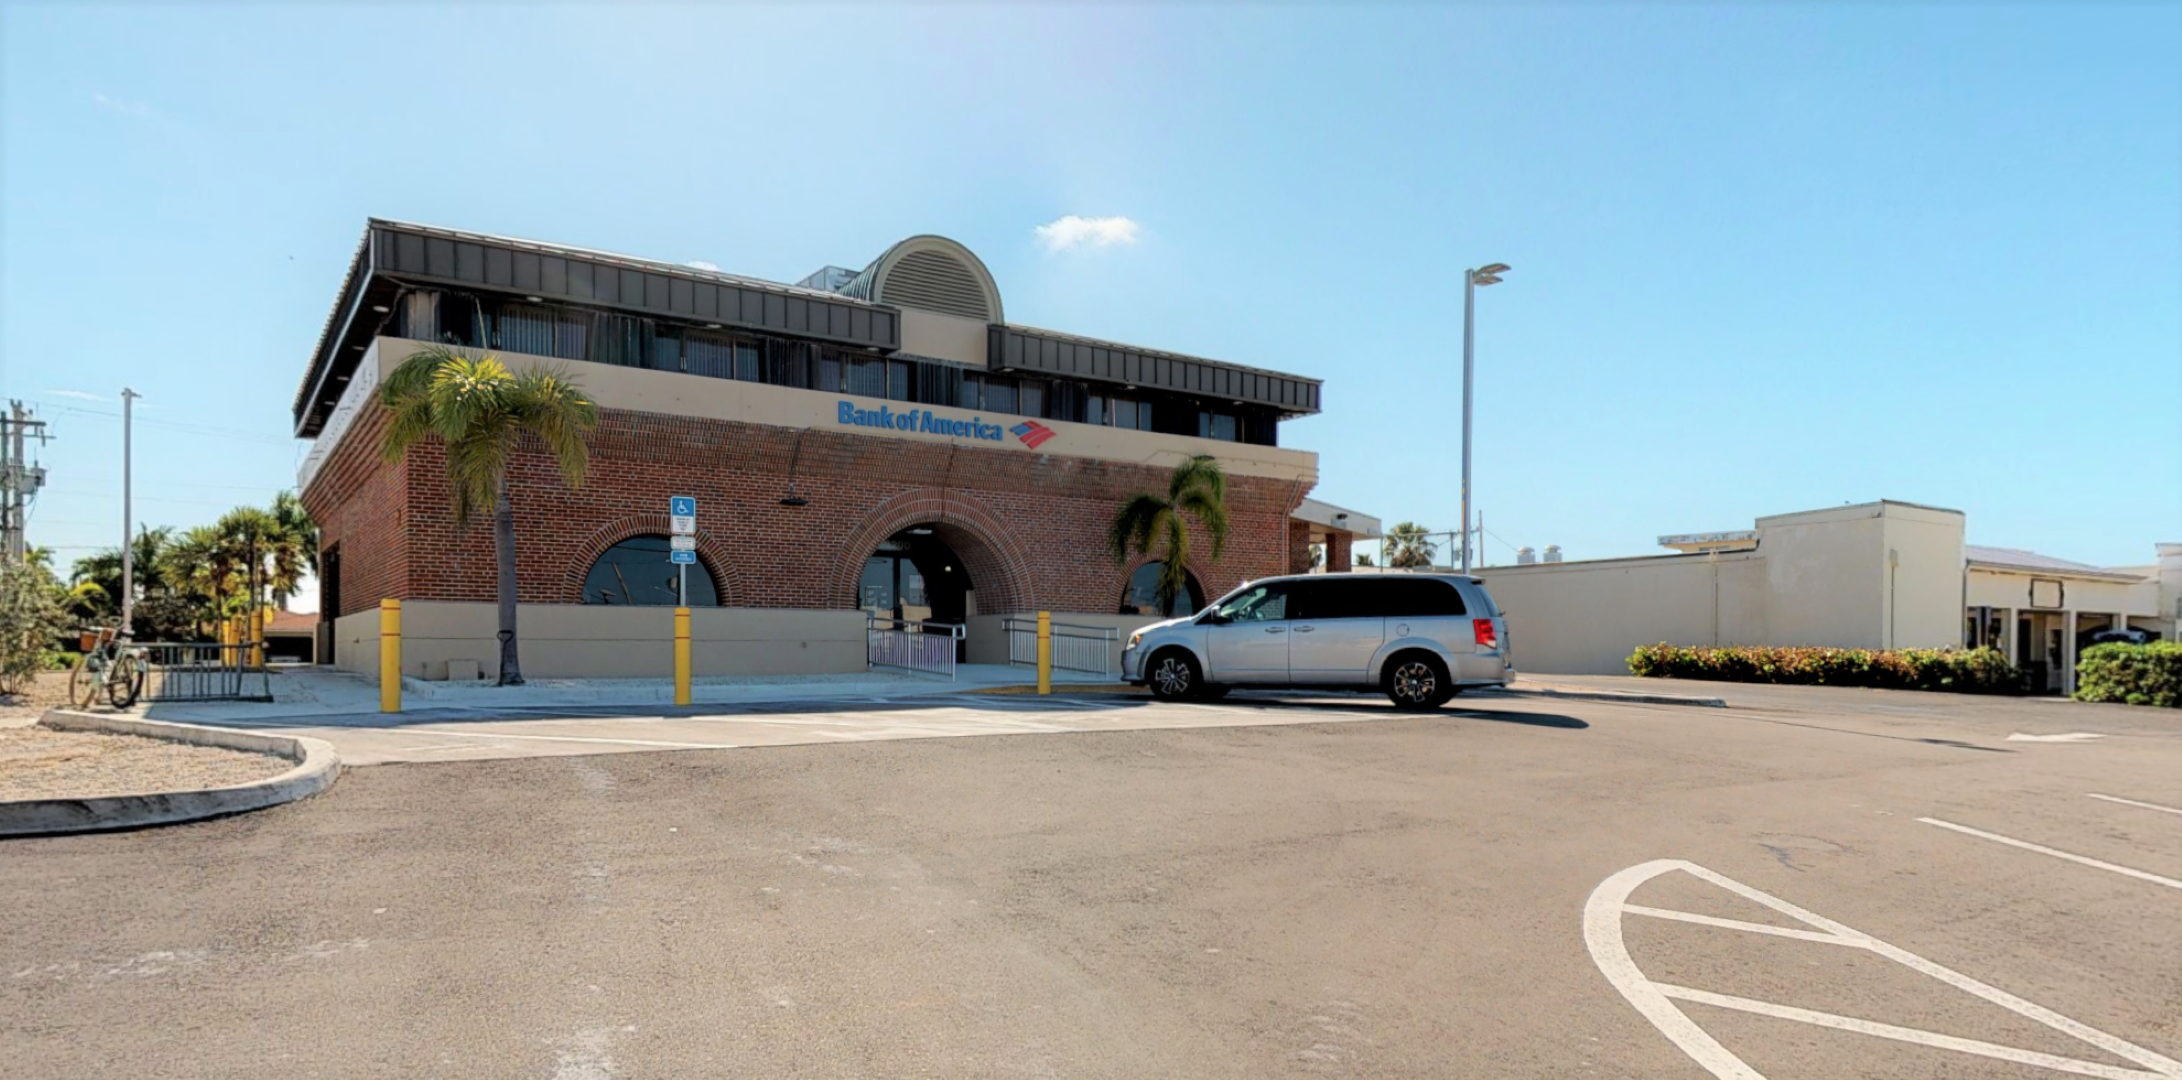 Bank of America financial center with drive-thru ATM and teller | 3200 Flagler Ave, Key West, FL 33040